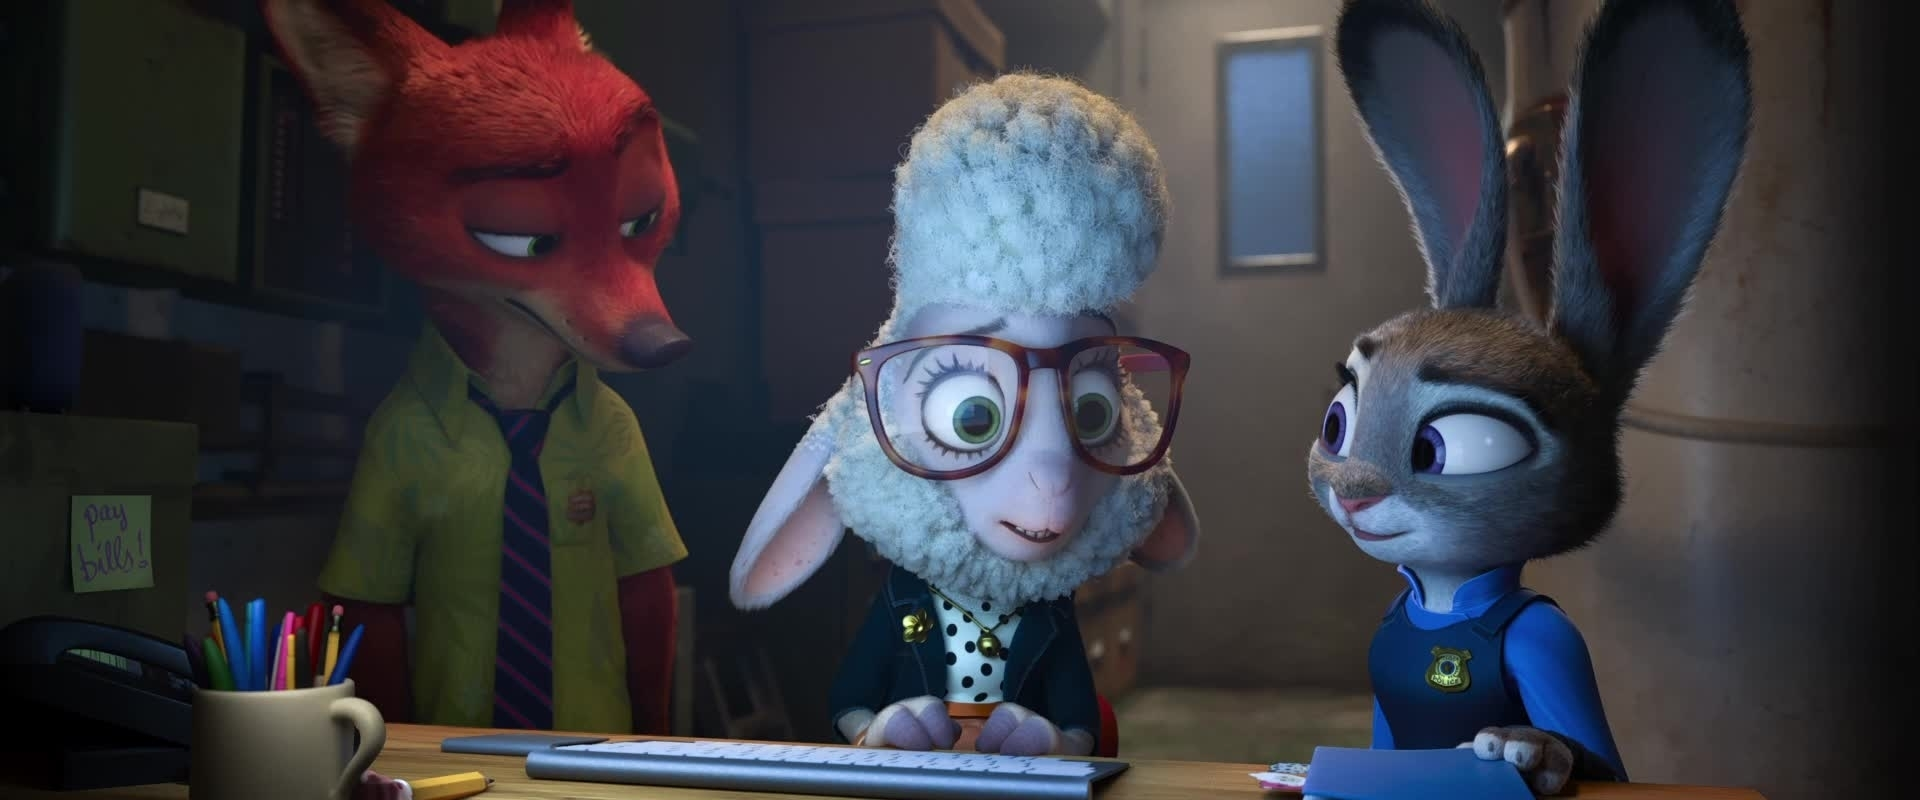 Assistant Mayor Bellwether